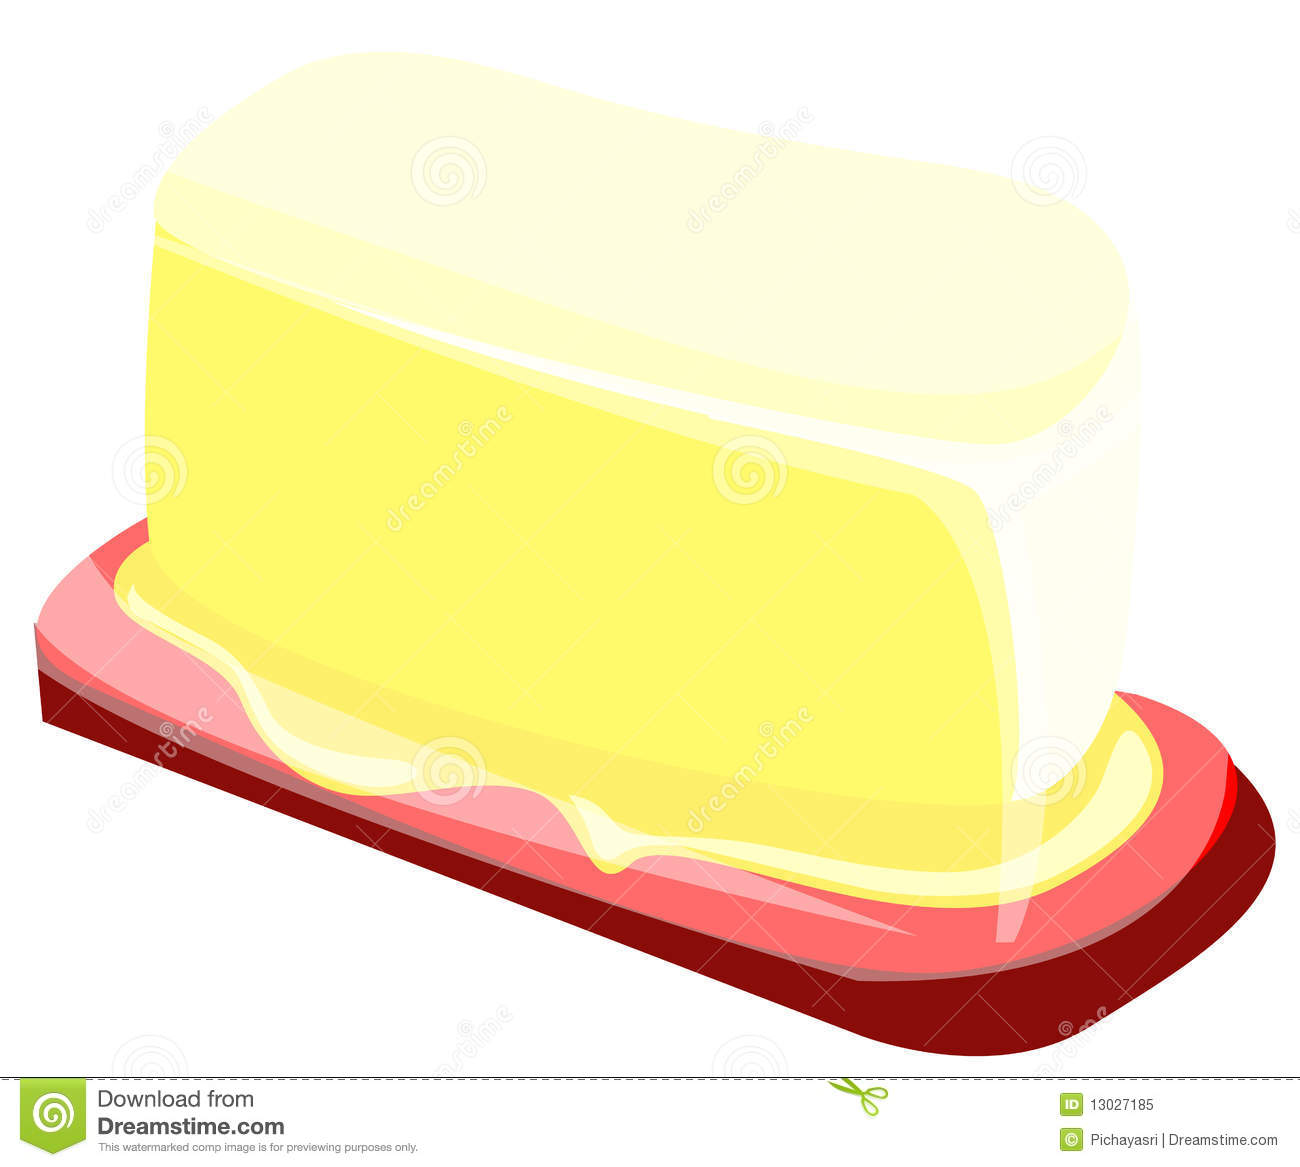 Illustration of isolated piece of butter on a plate.